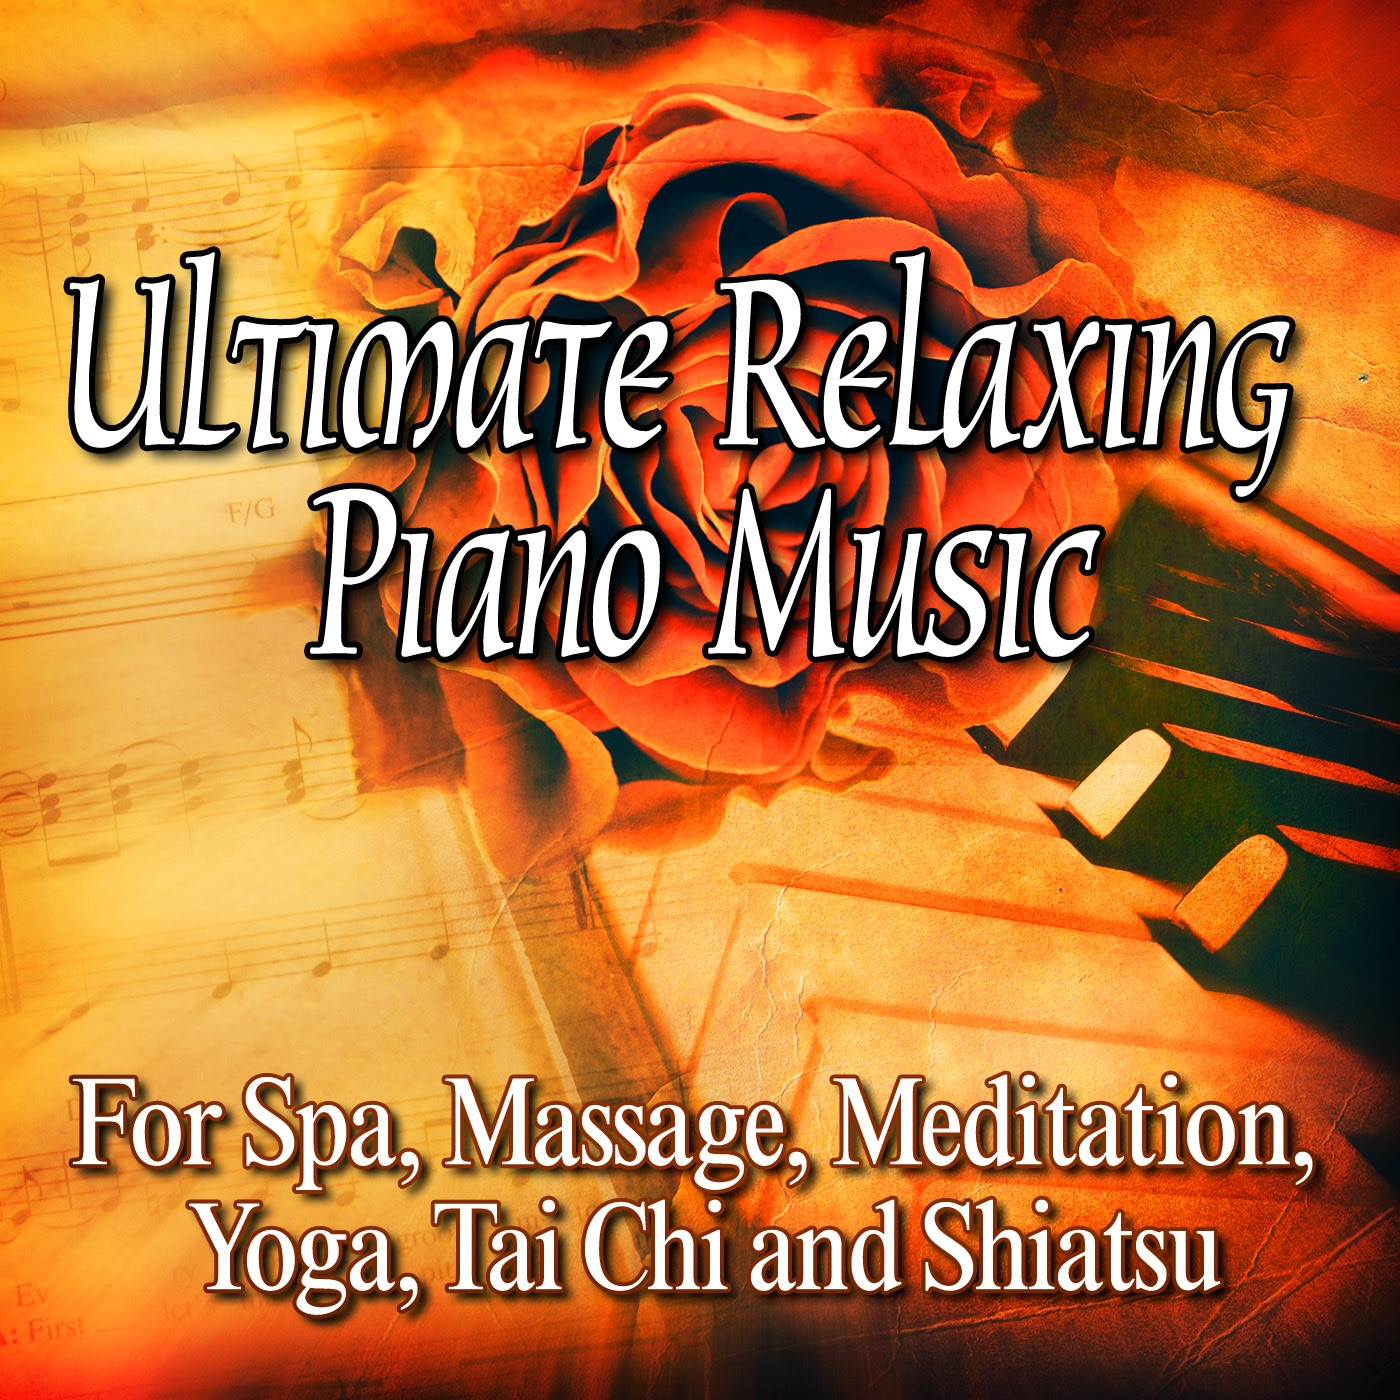 Ultimate Relaxing Piano Music for Spa, Massage, Meditation, Yoga, Tai Chi and Shiatsu